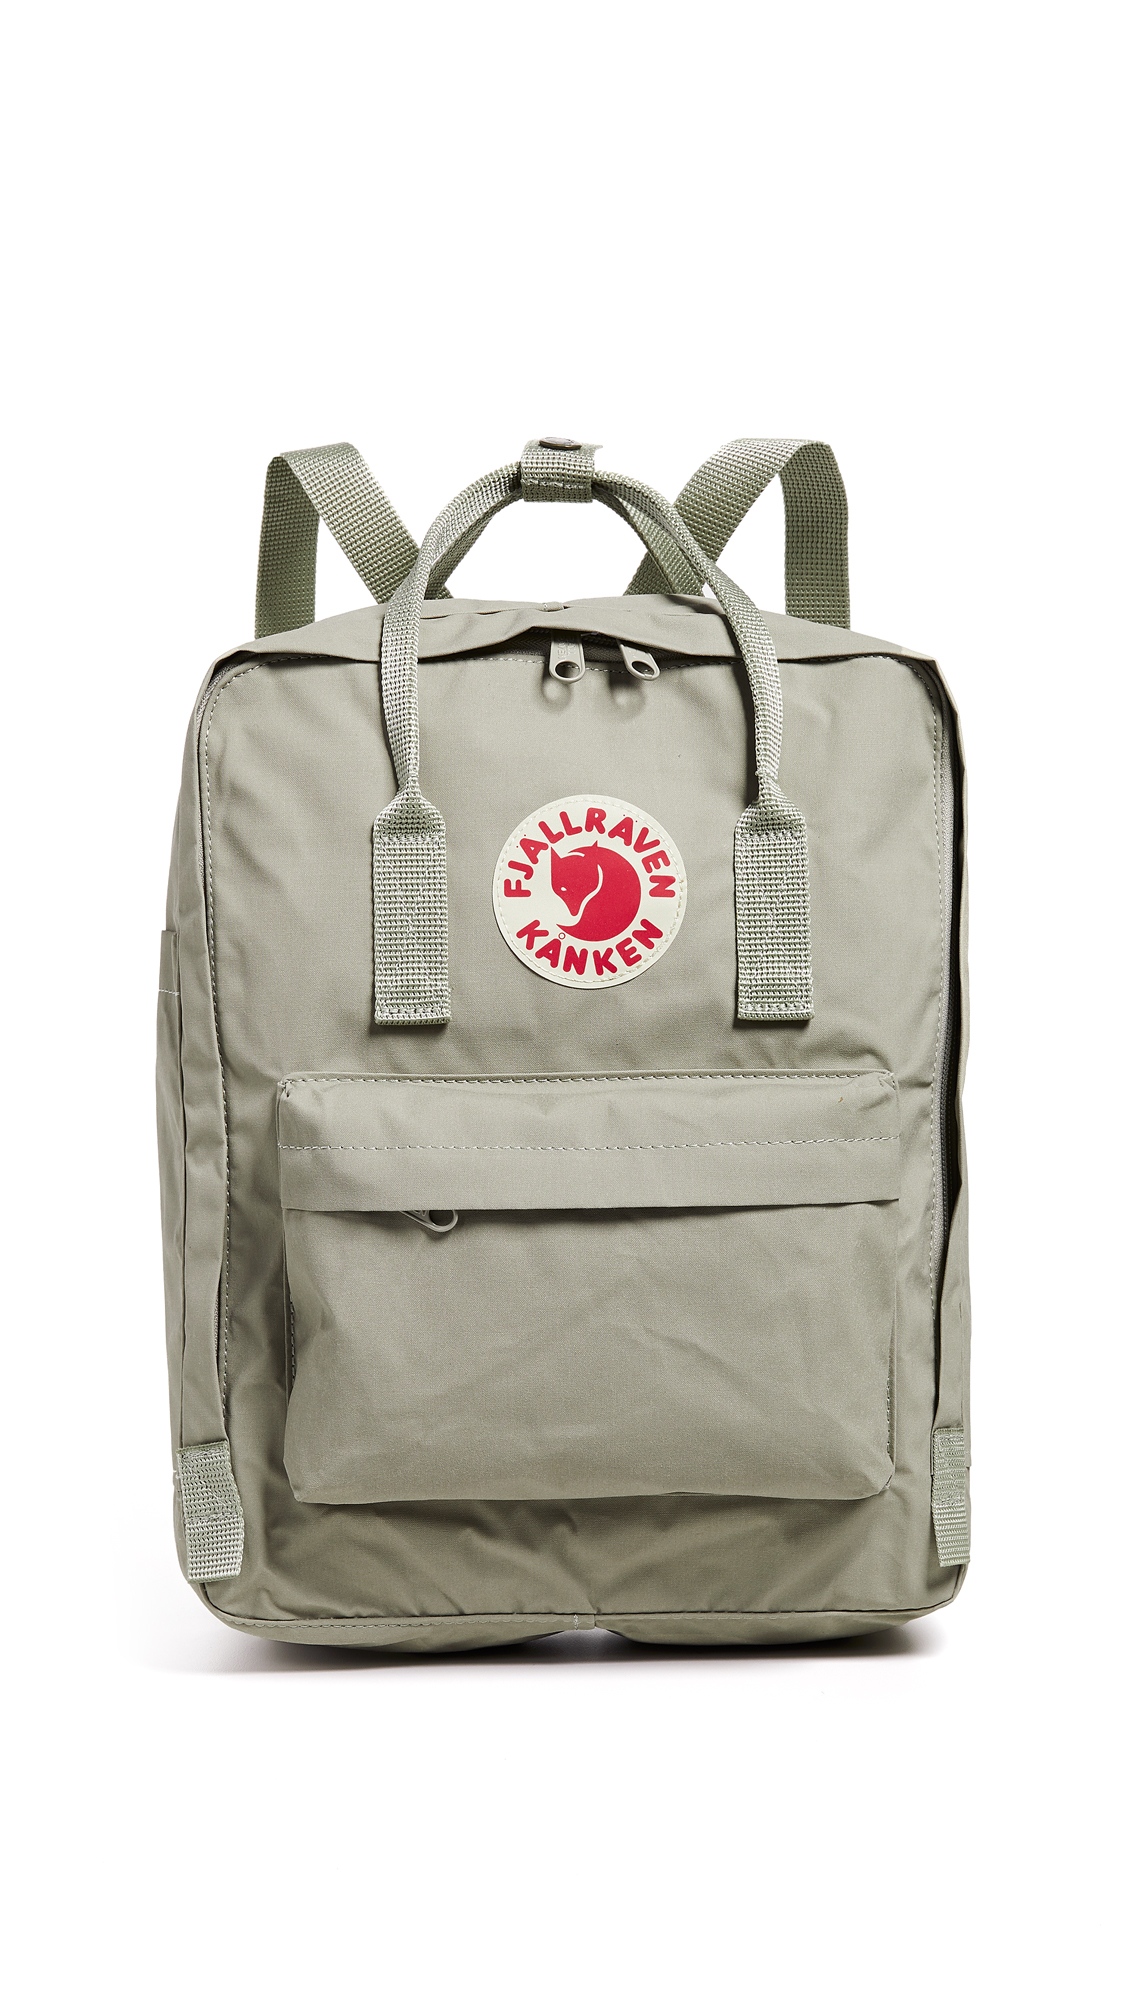 FJALL RAVEN Kanken Backpack in Putty